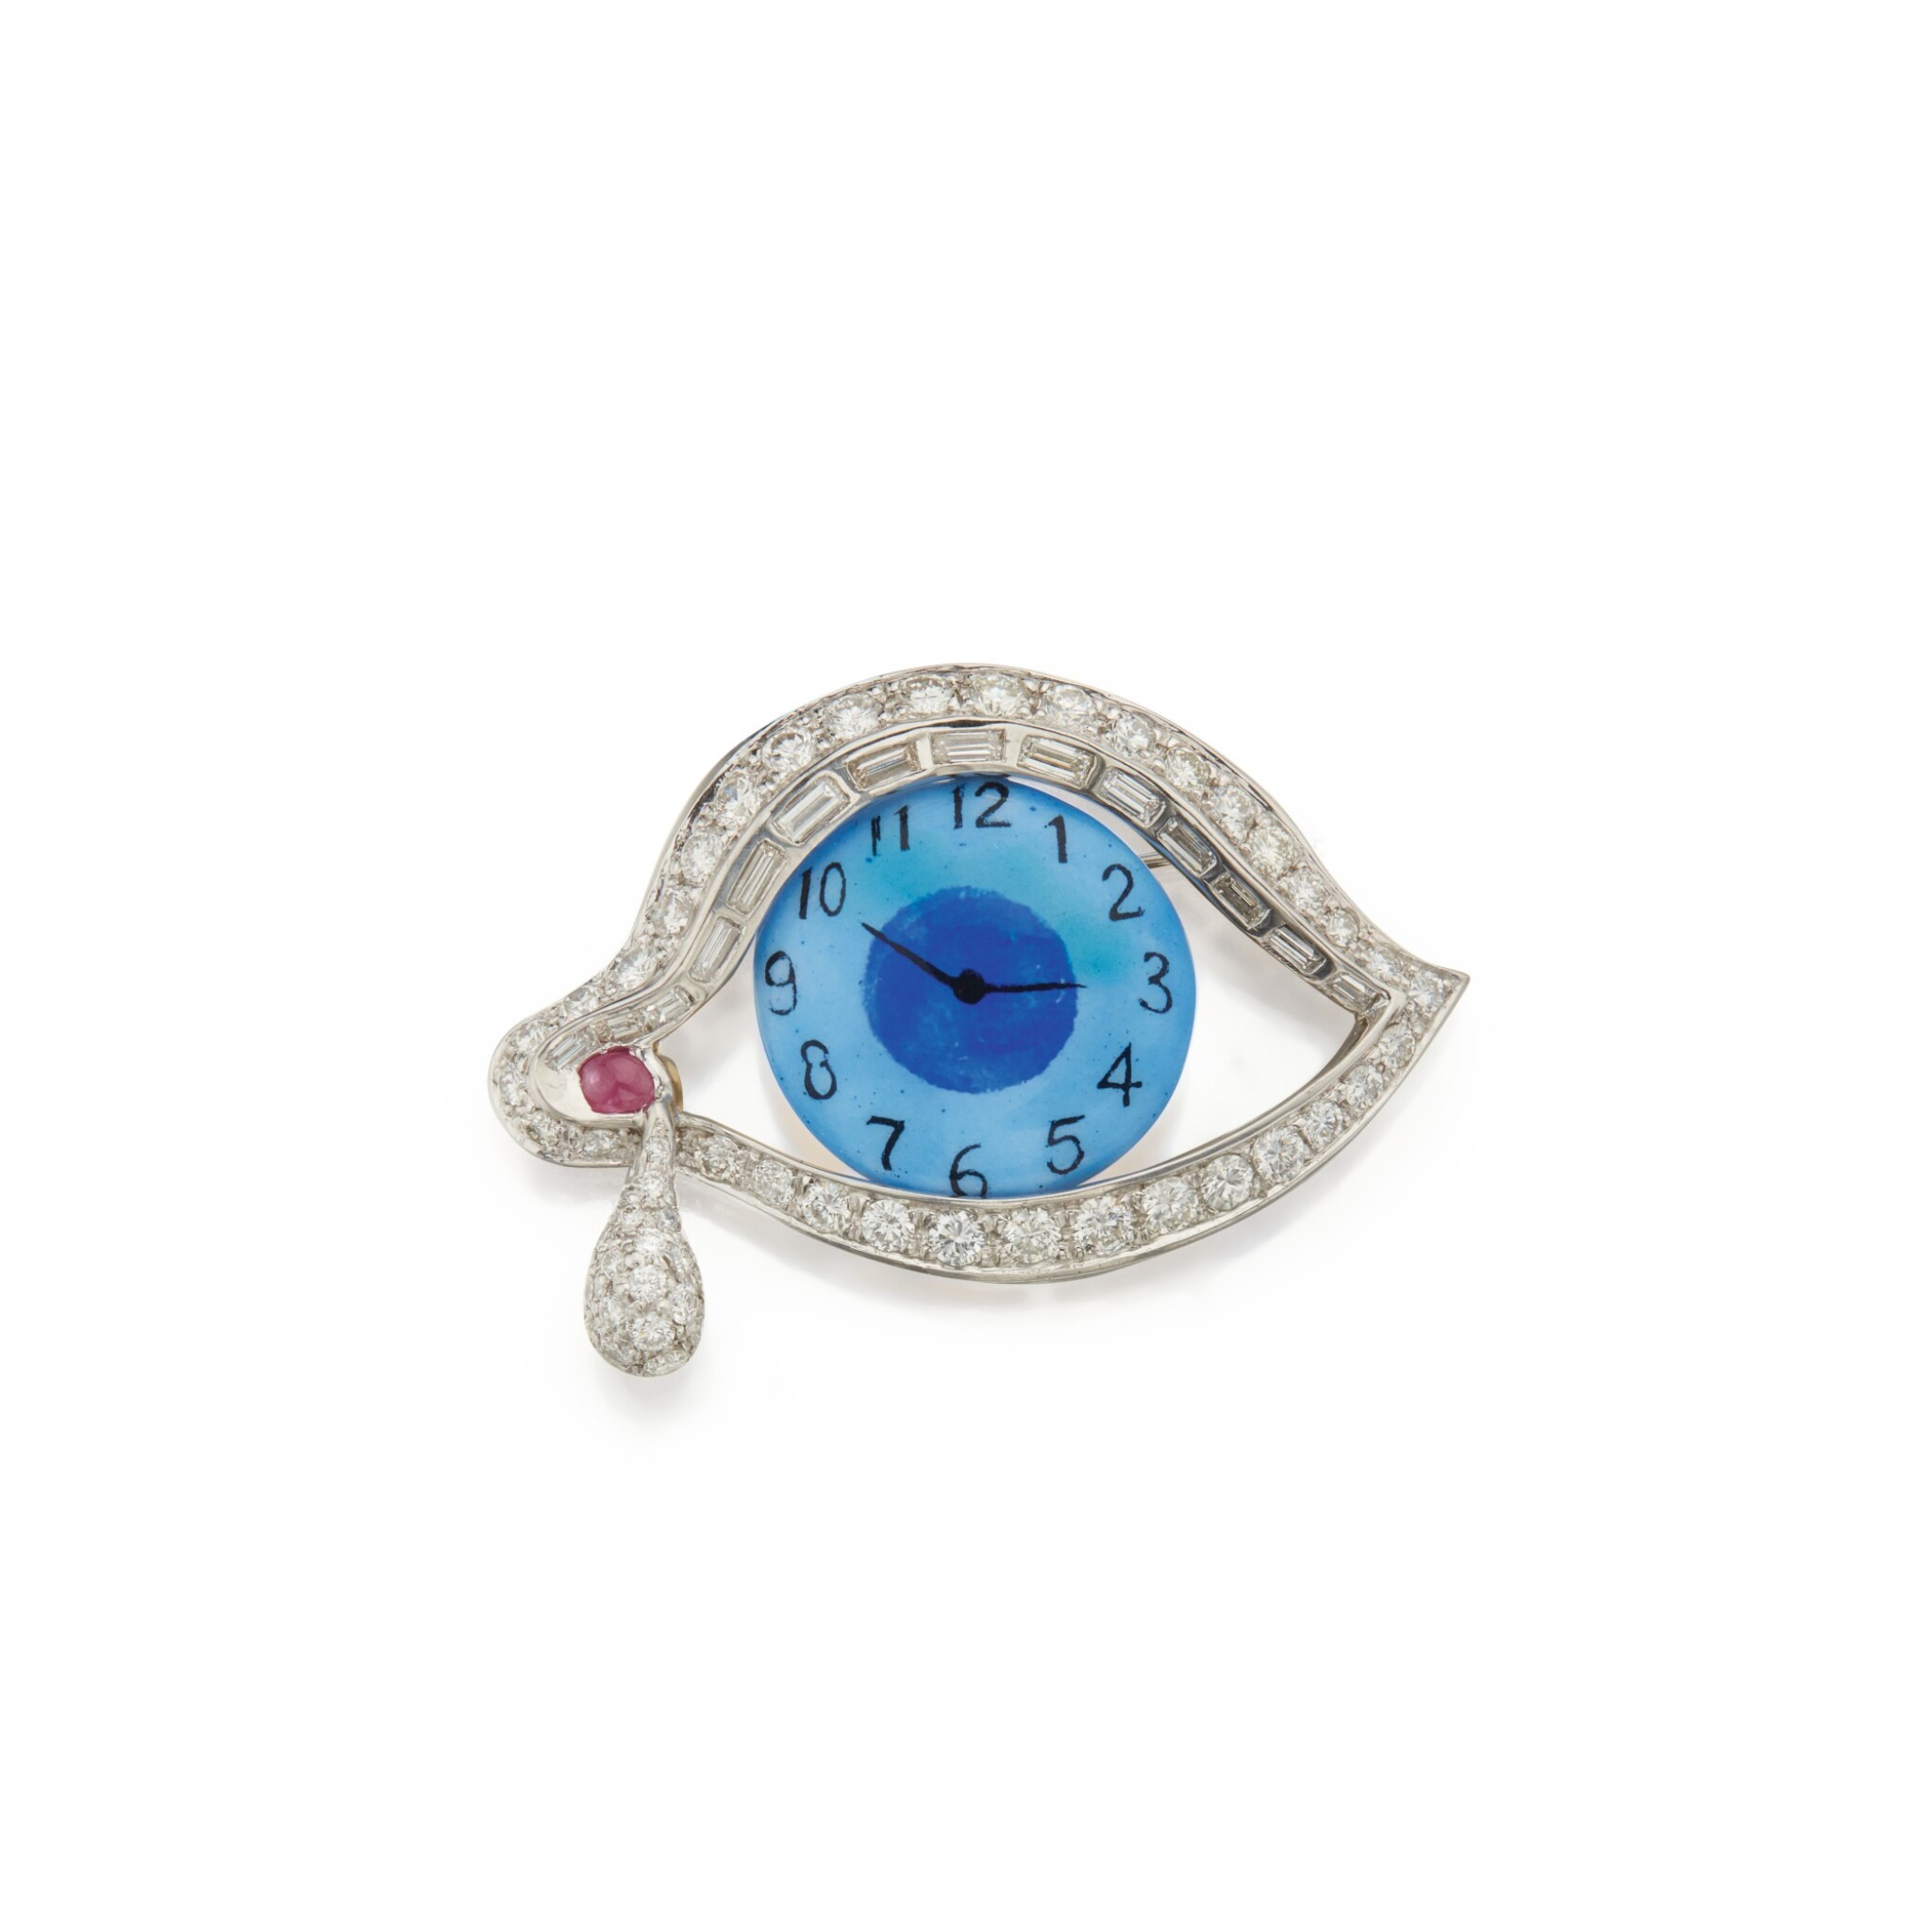 View 1 of Lot 460. Henryk Kaston for Salvador Dalí | Enamel, Diamond and Ruby 'Eye of Time' Brooch.